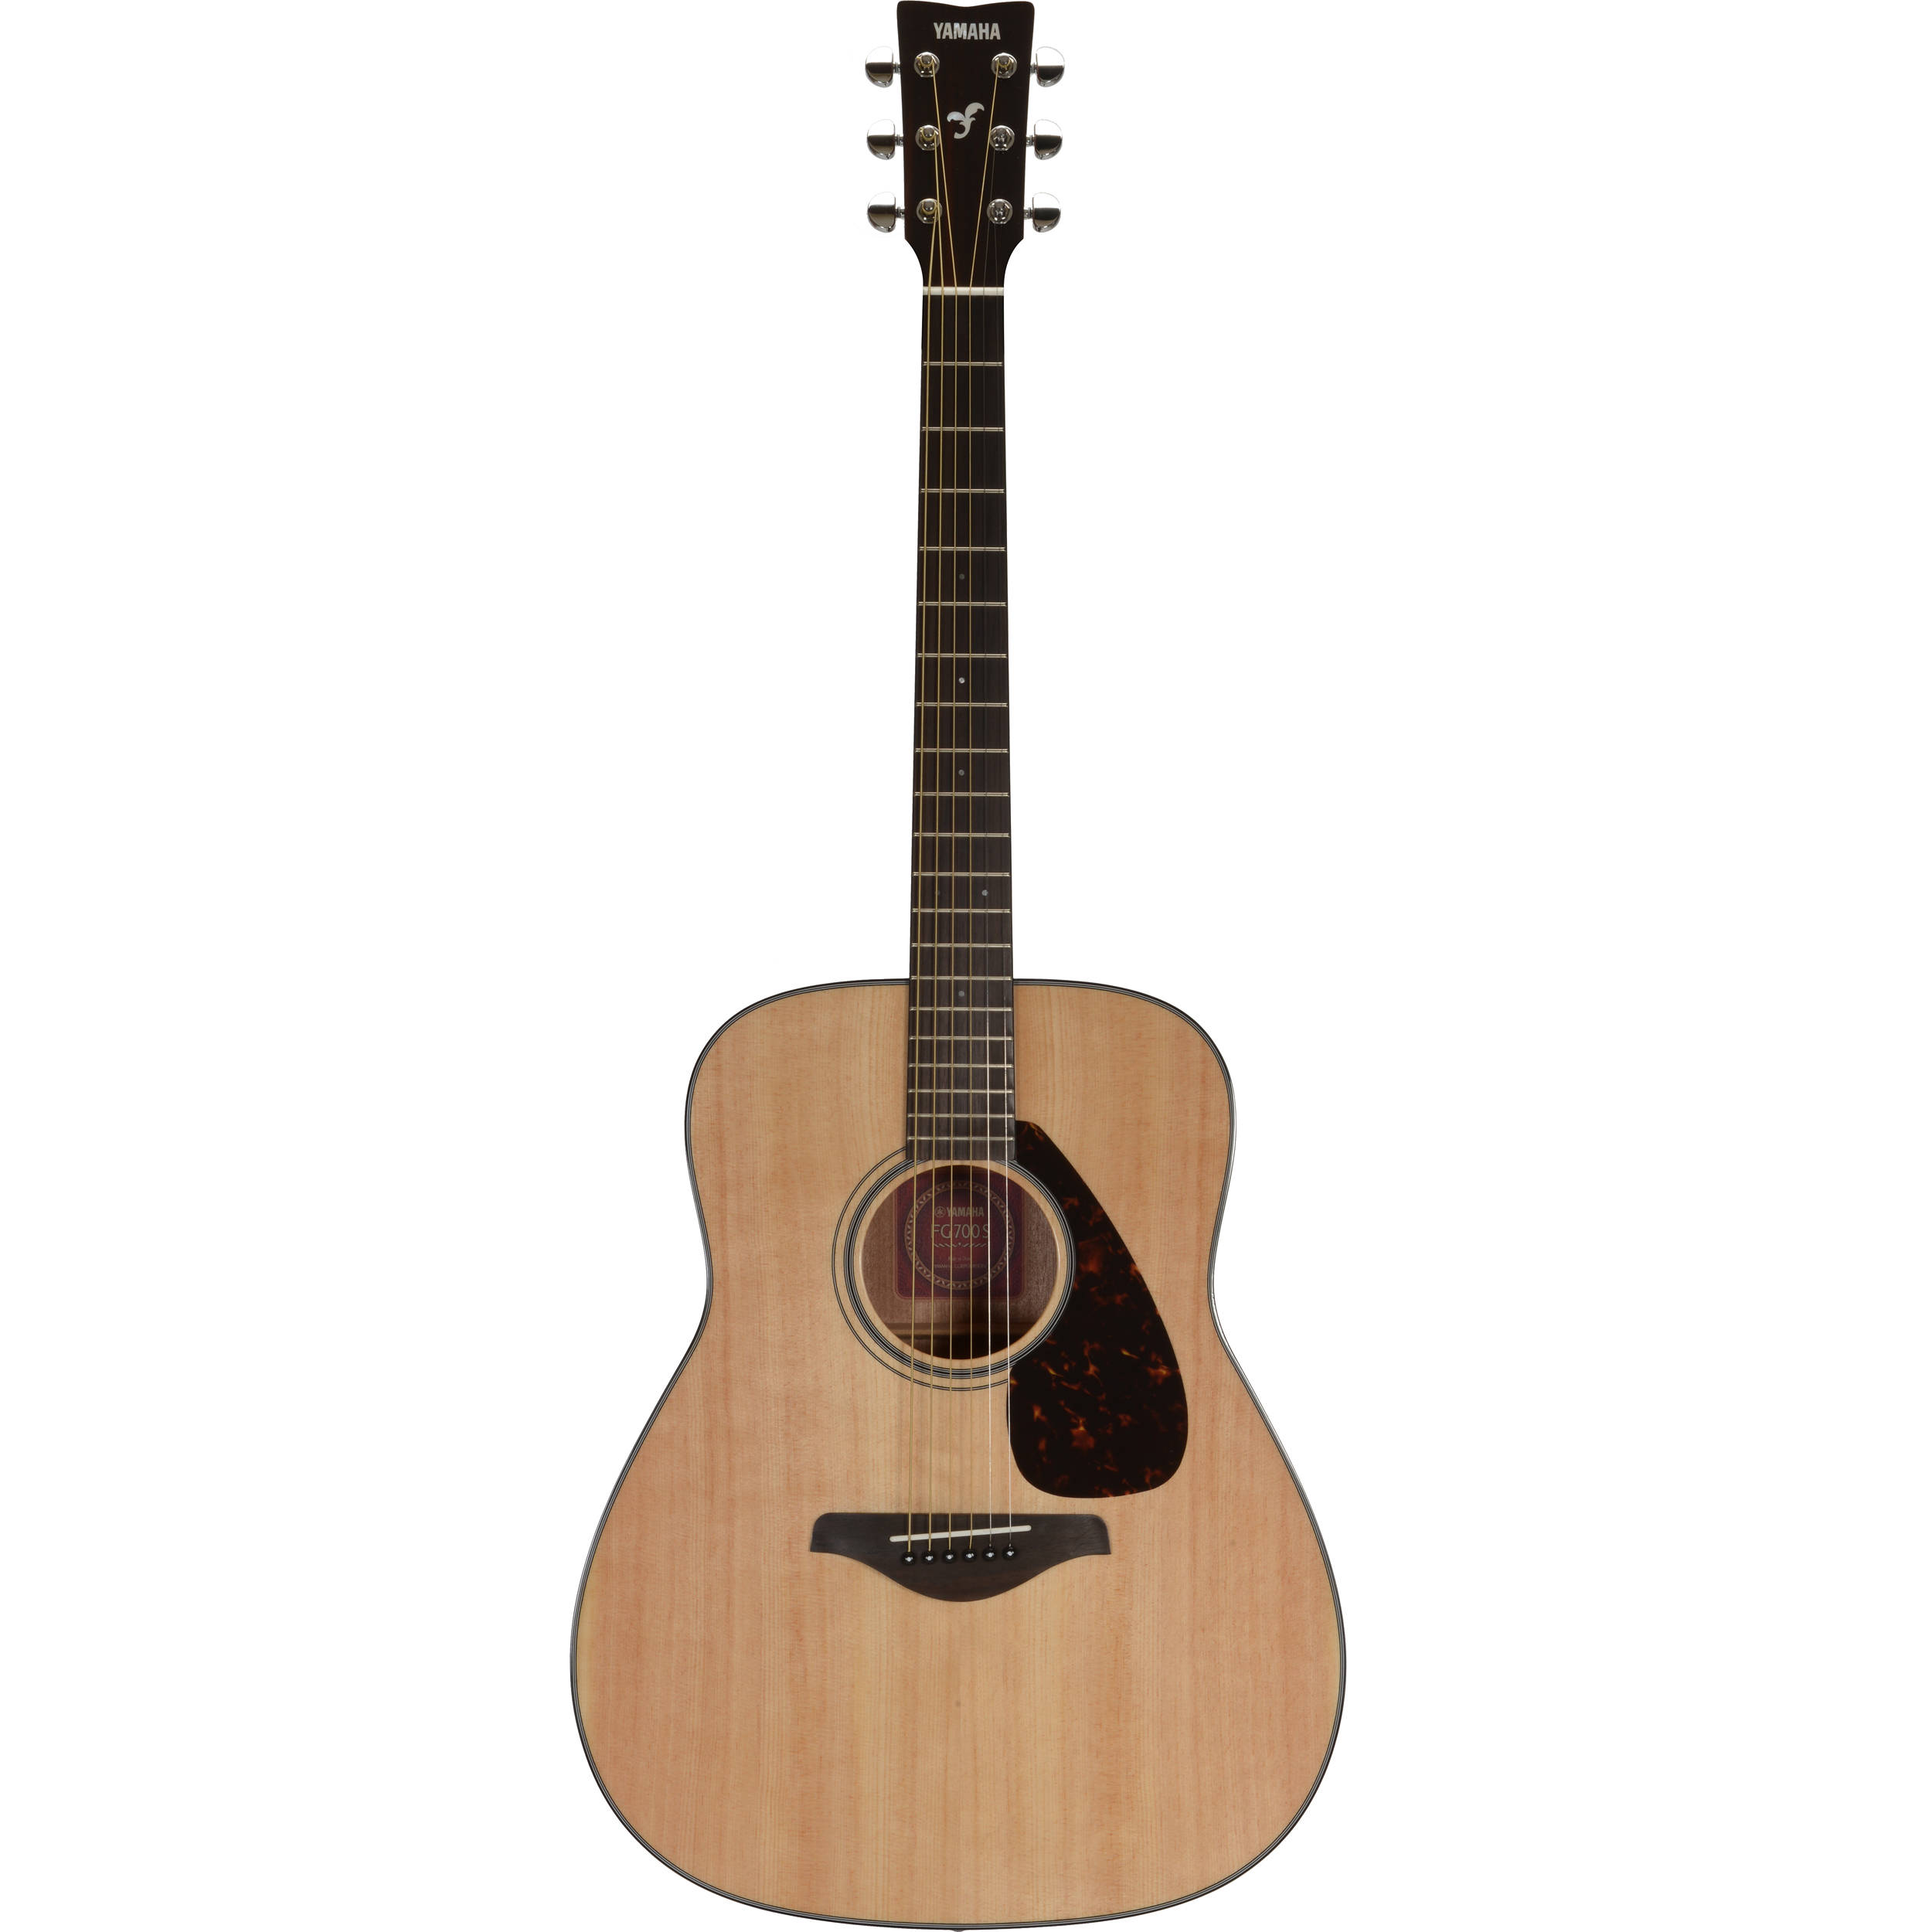 What Size Is The Yamaha Fg Acoustic Guitar